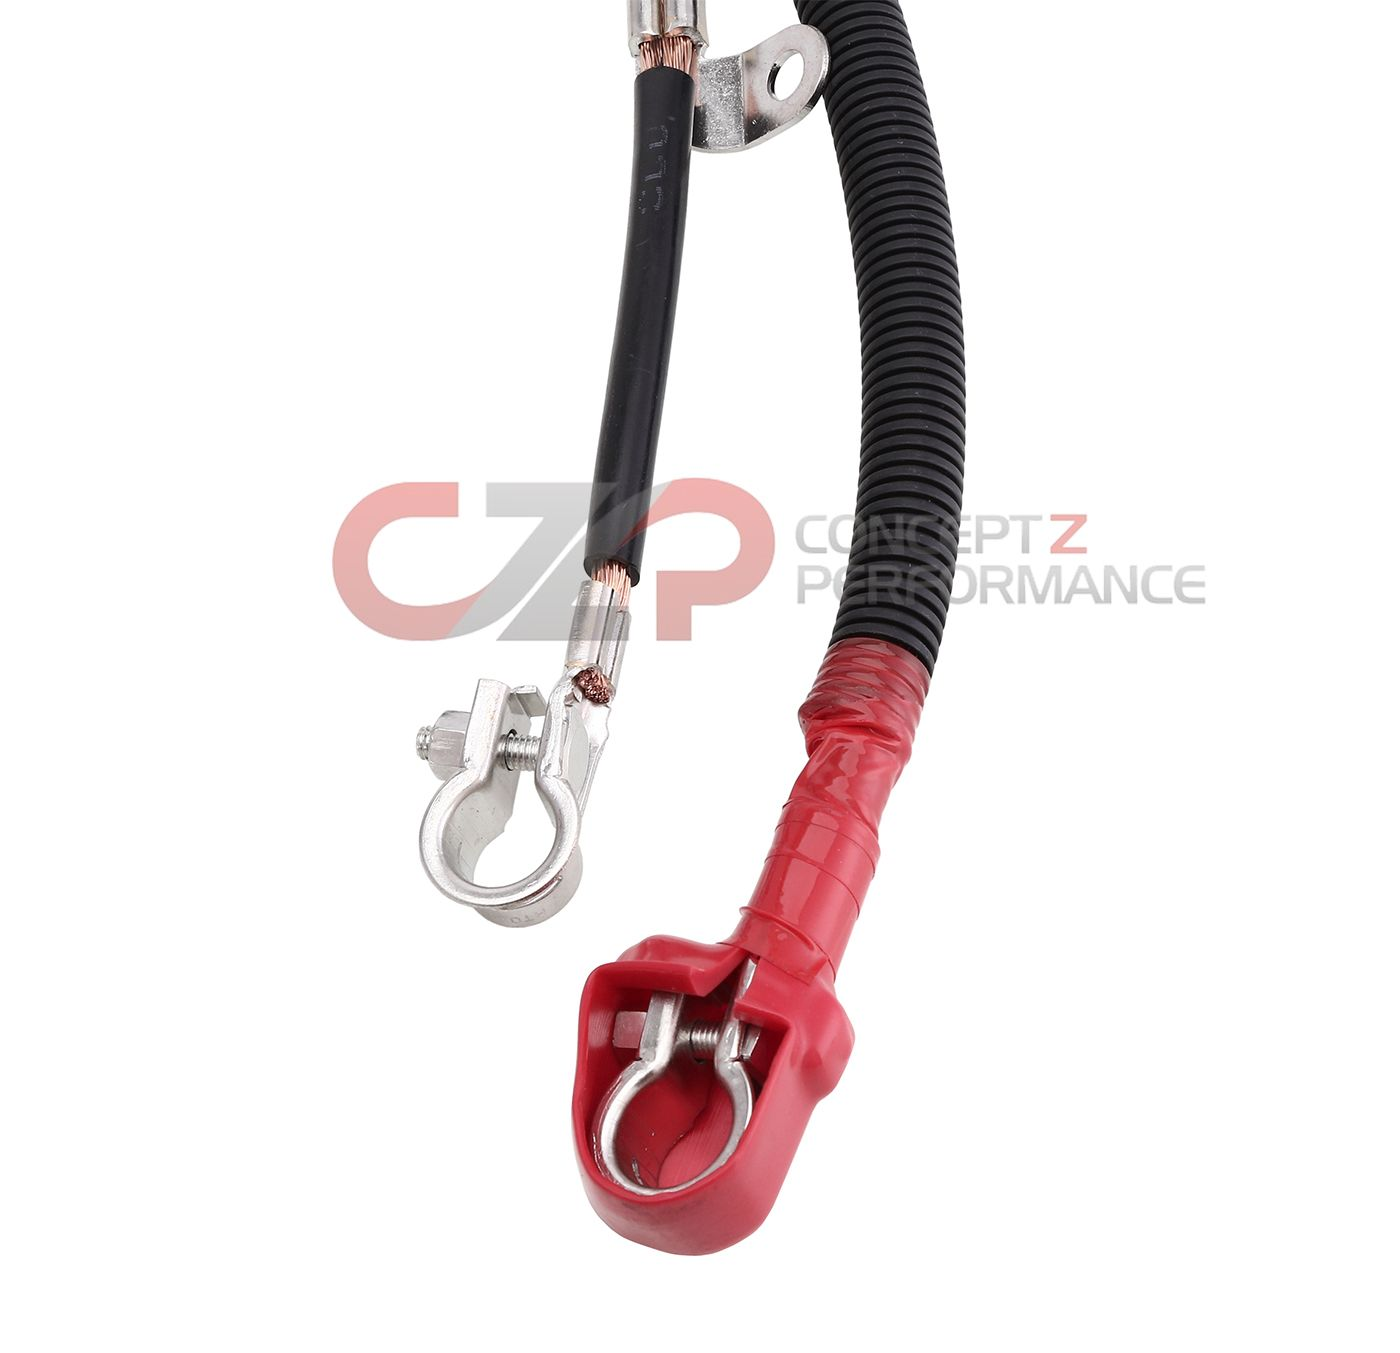 Oem Wiring Harness 300zx : Czp oem replacement battery harness cables nissan zx